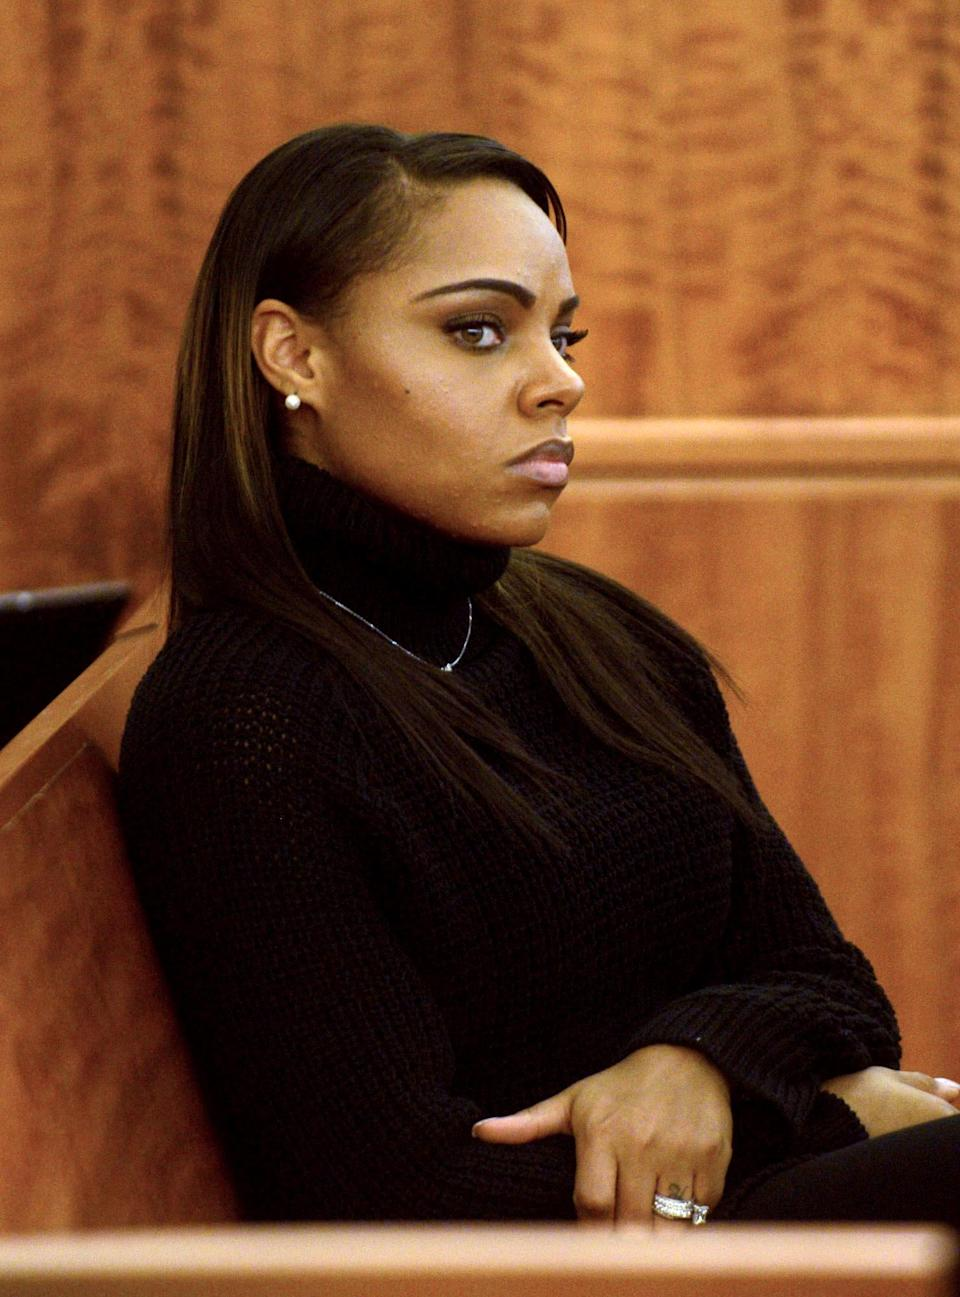 Former New England Patriots football player Aaron Hernandez's fiancee Shayanna Jenkins sits during his murder trial at Bristol County Superior Court in Fall River, Massachusetts February 11, 2015. REUTERS/Ted Fitzgerald/Pool (UNITED STATES - Tags: CRIME LAW SPORT FOOTBALL)